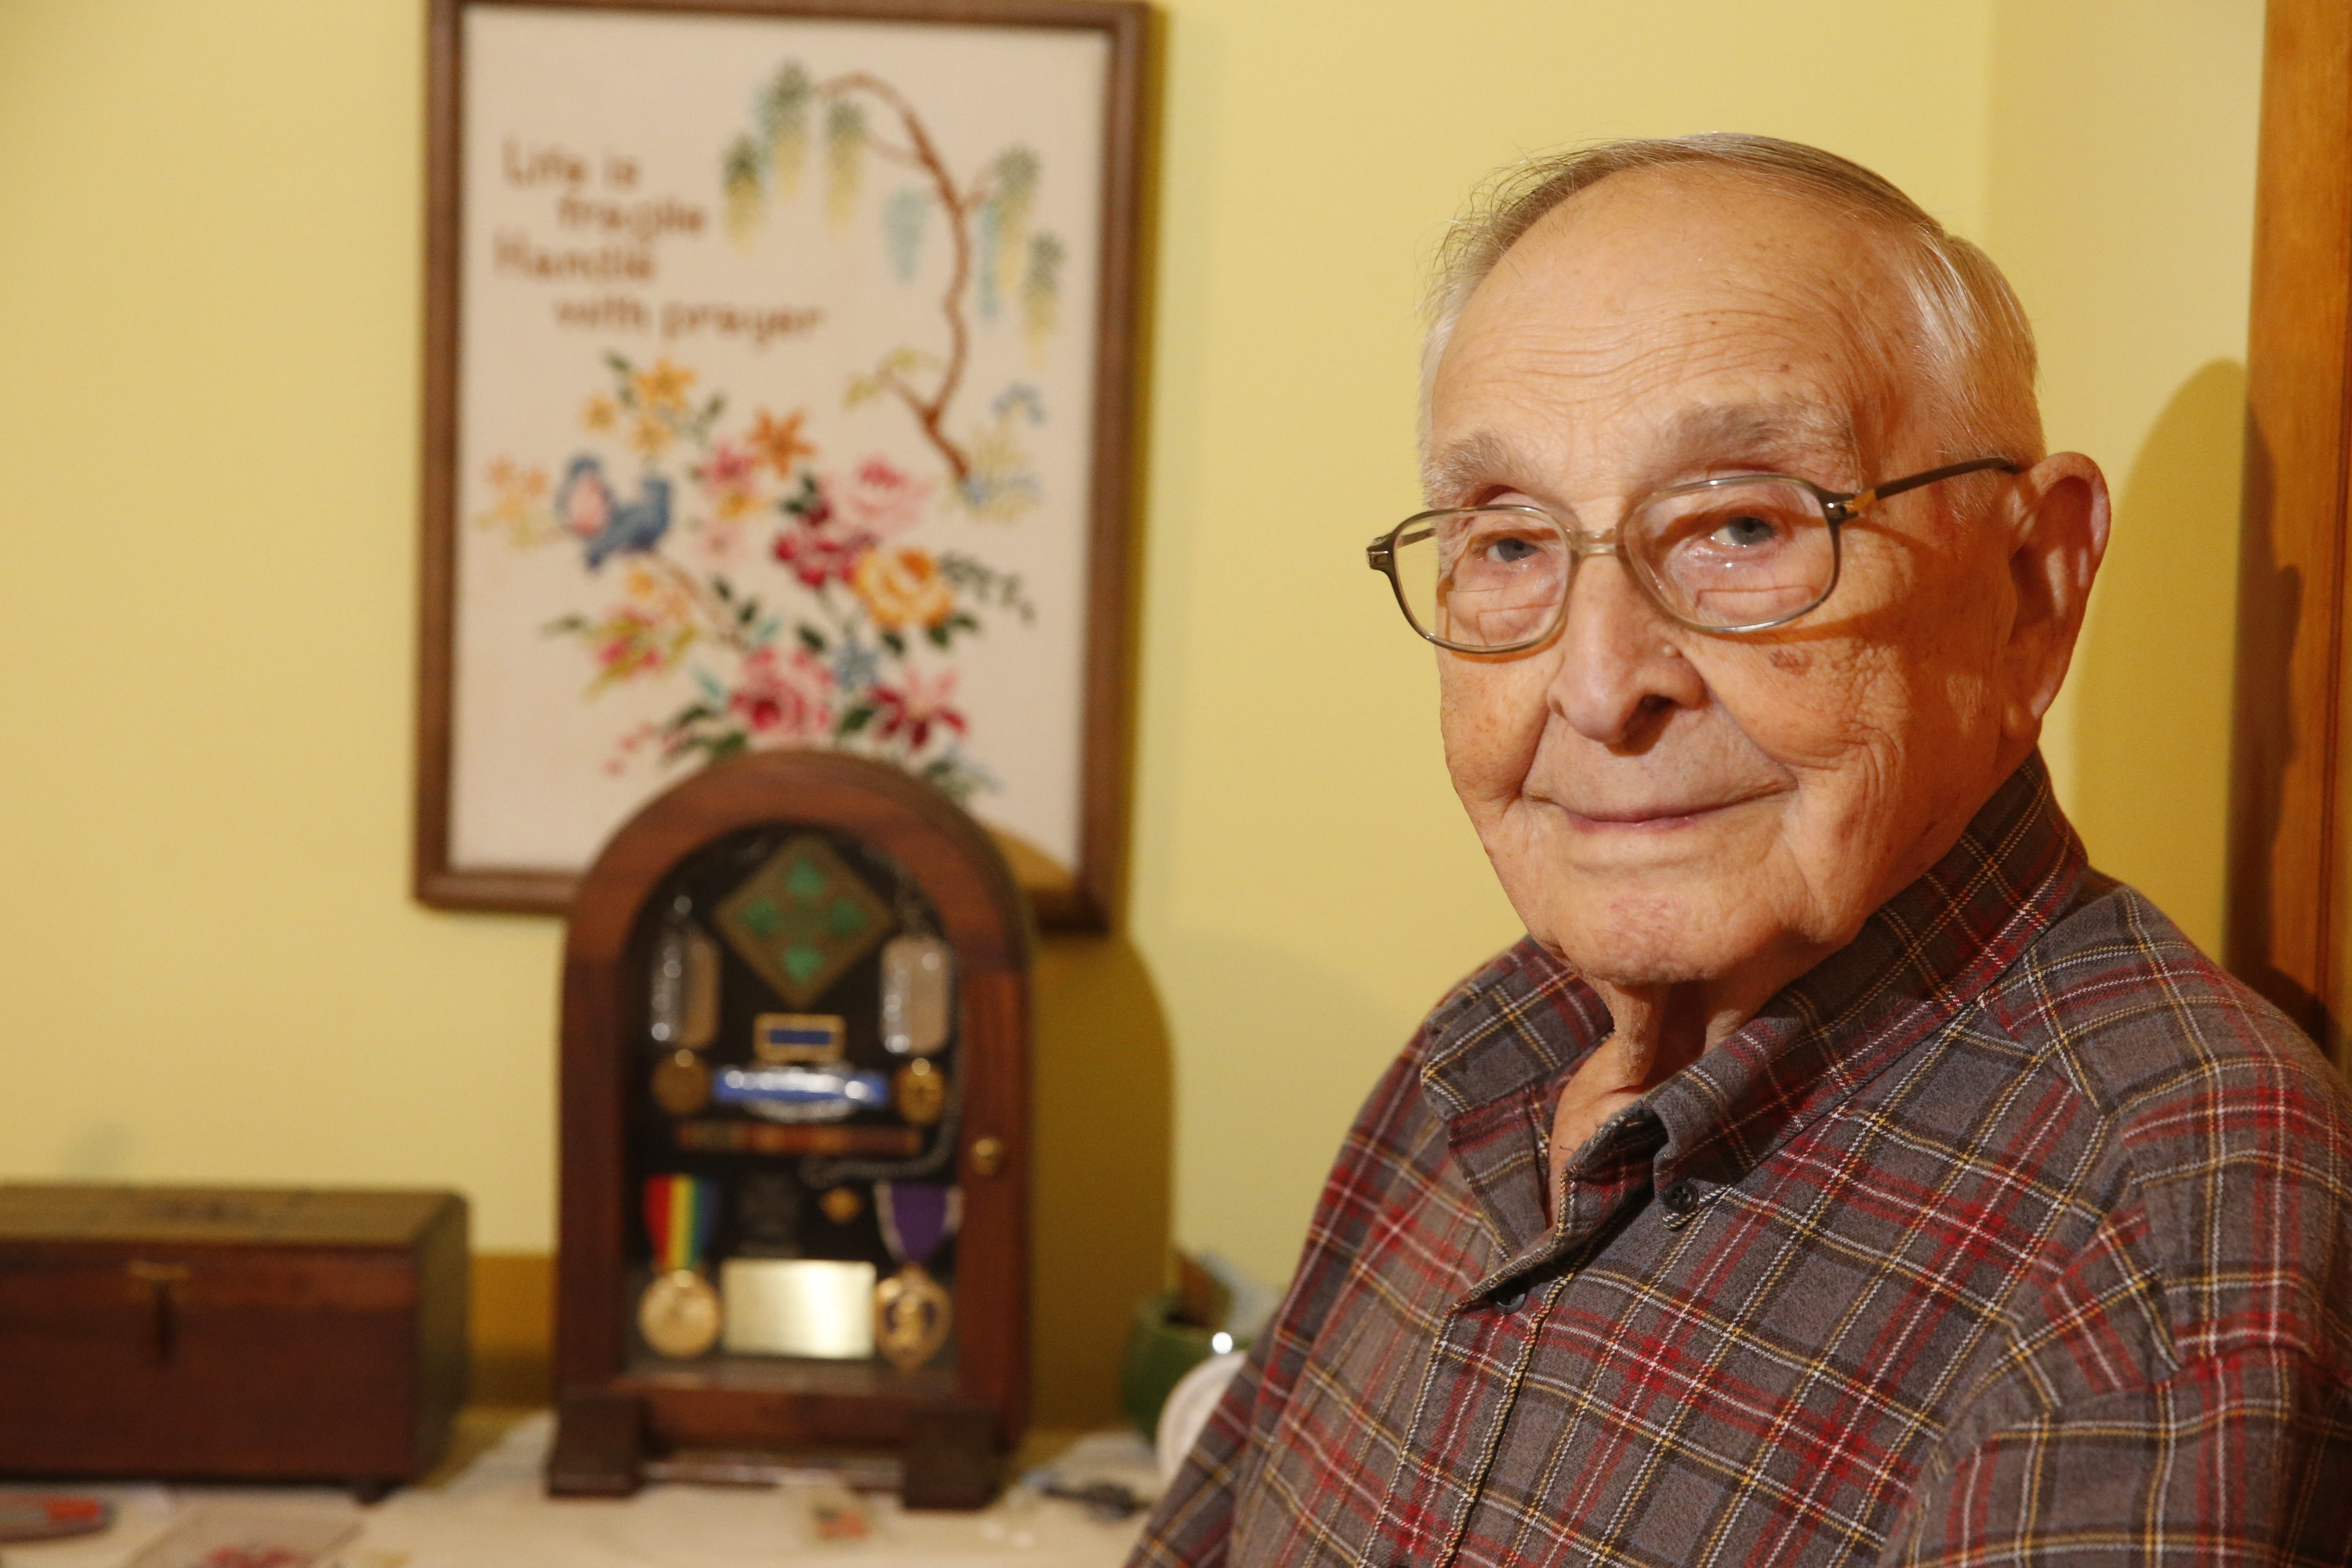 Alvin Hardy, at home in Amherst, recalls Normandy and, two weeks later, Cherbourg, where he got hit by shrapnel.